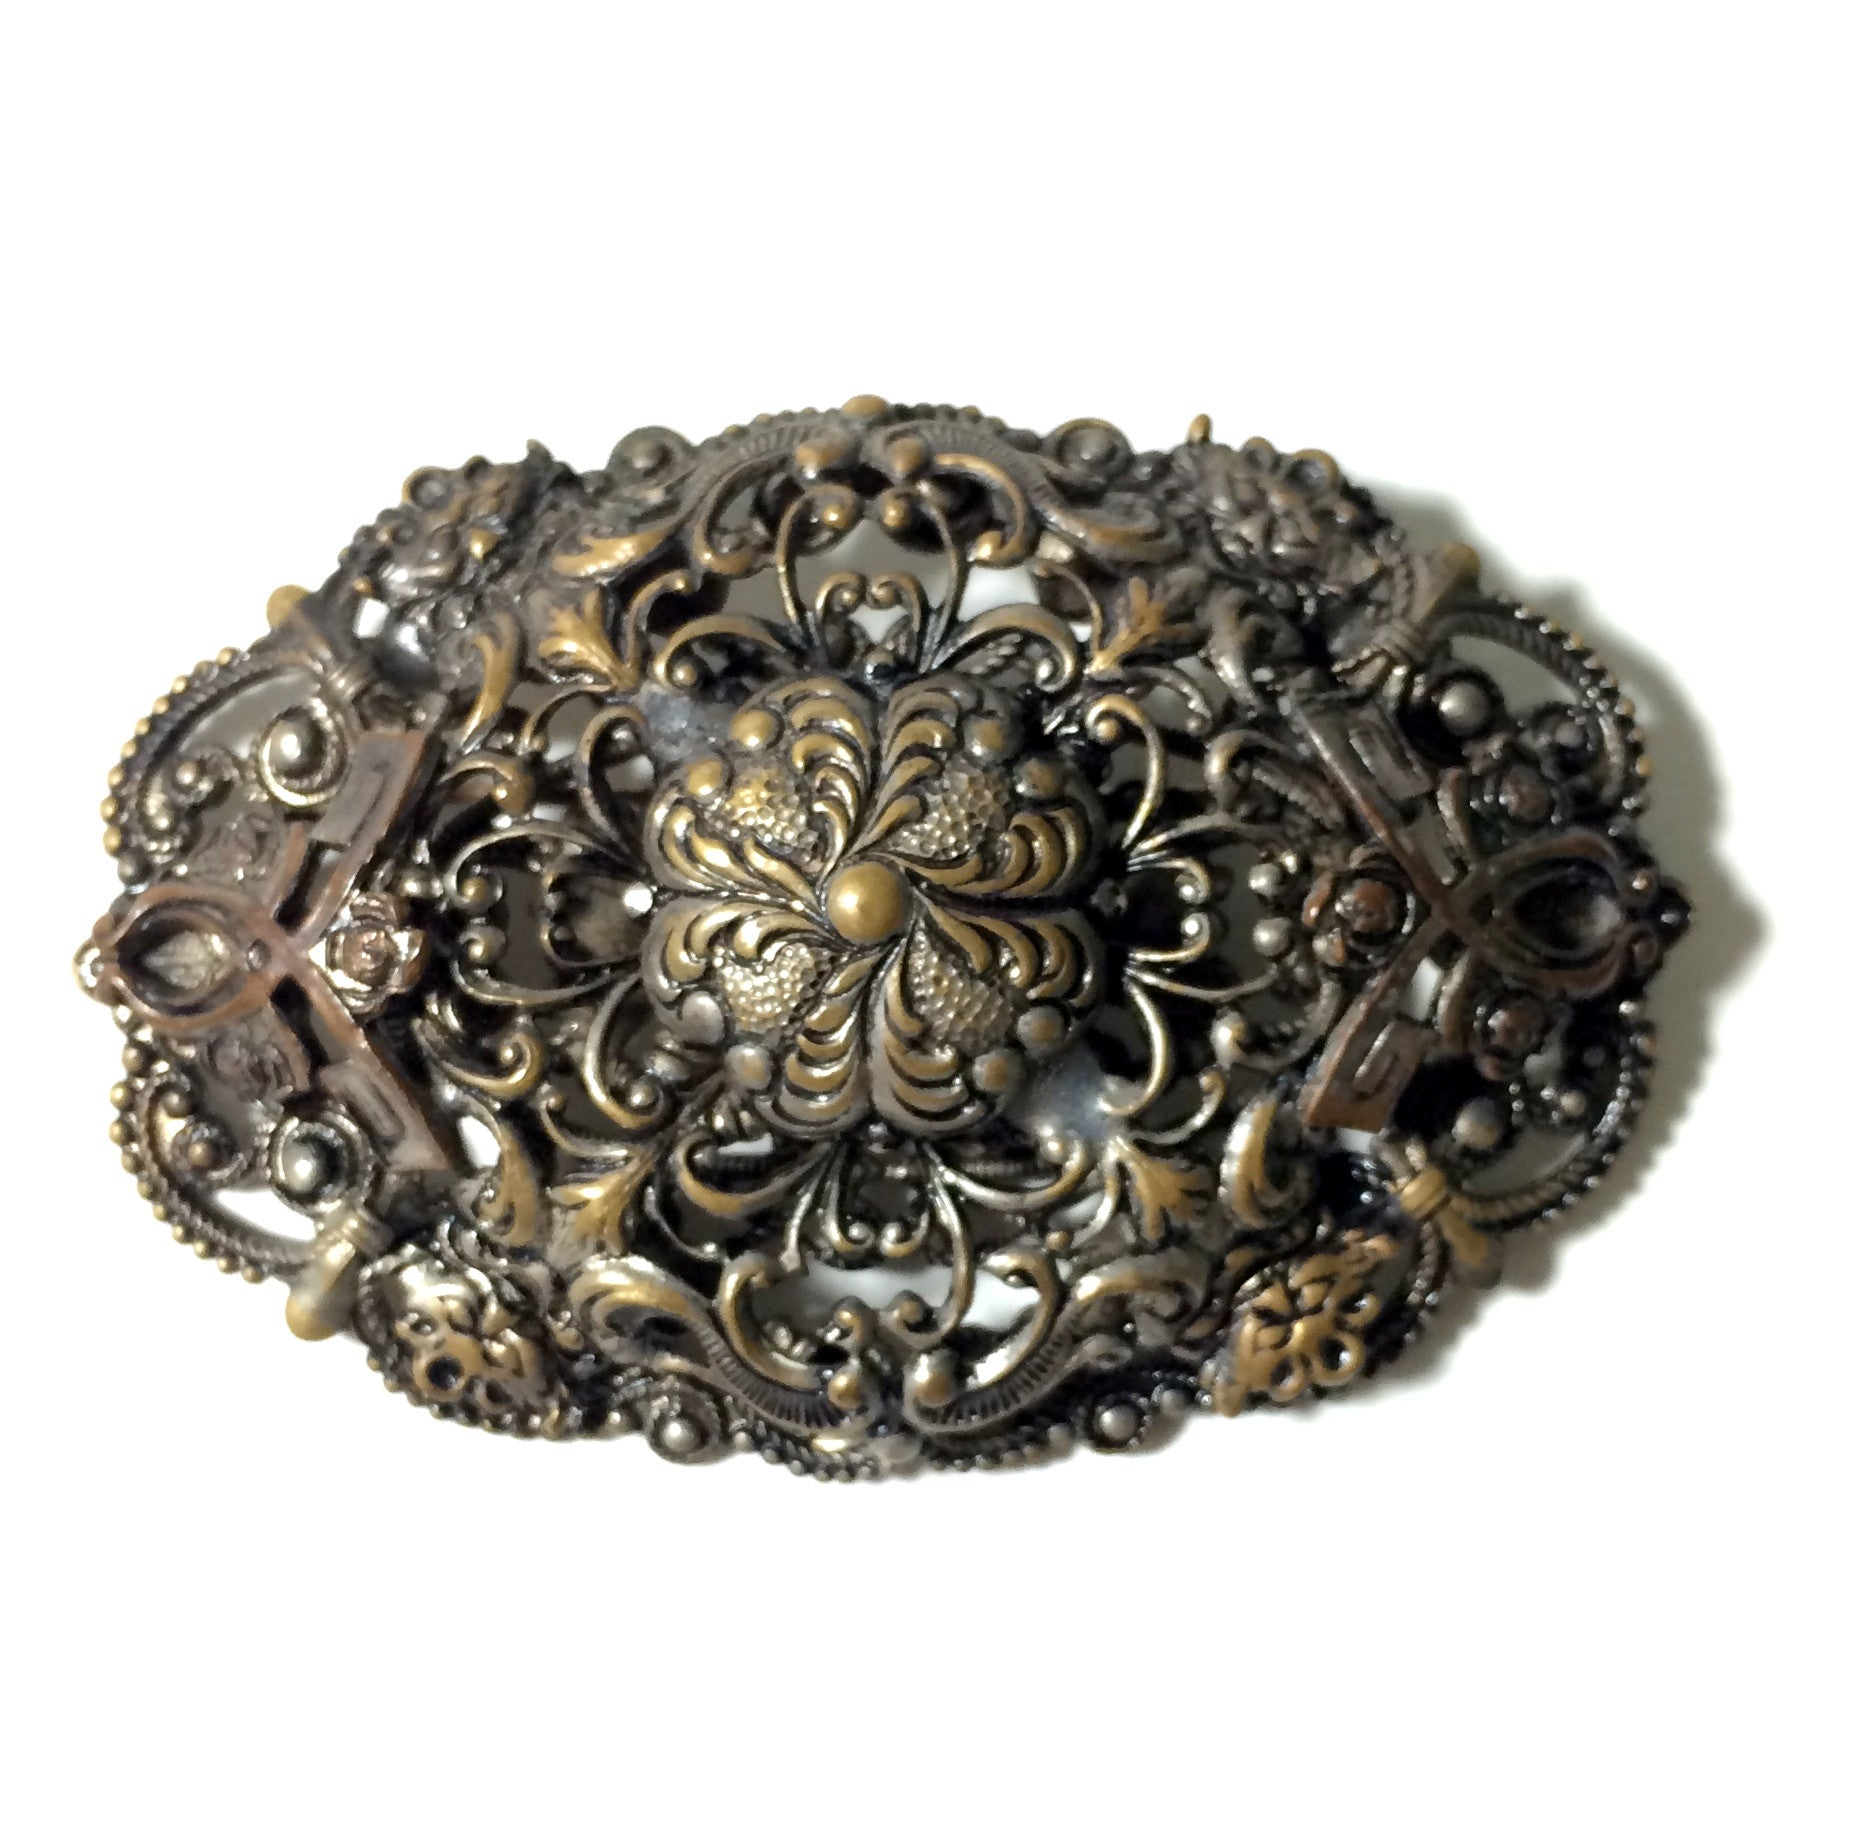 Exquisitely Detailed Filigree Large Statement Brooch circa 1930s